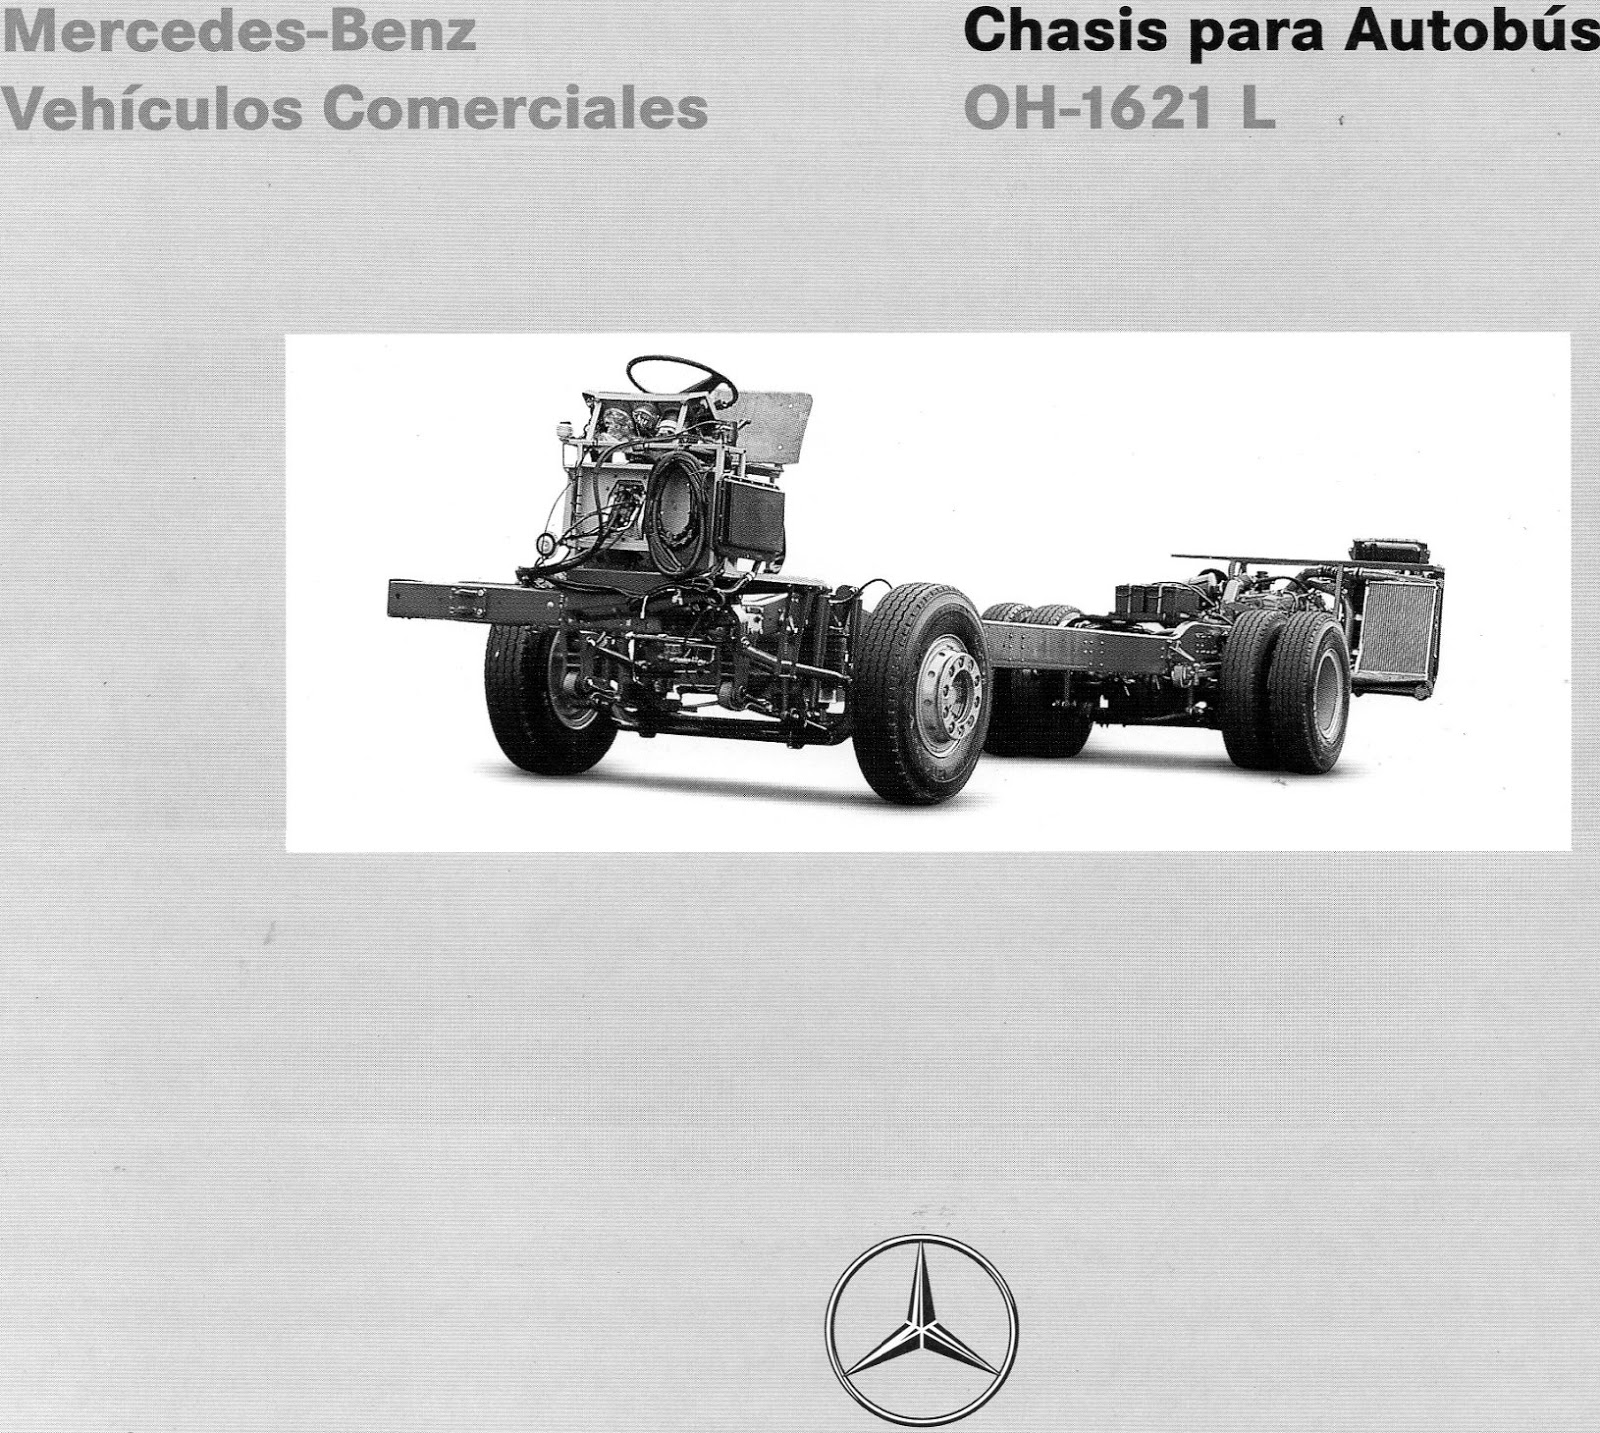 Cami n argentino mercedes benz oh 1621 l for Mercedes benz ohio